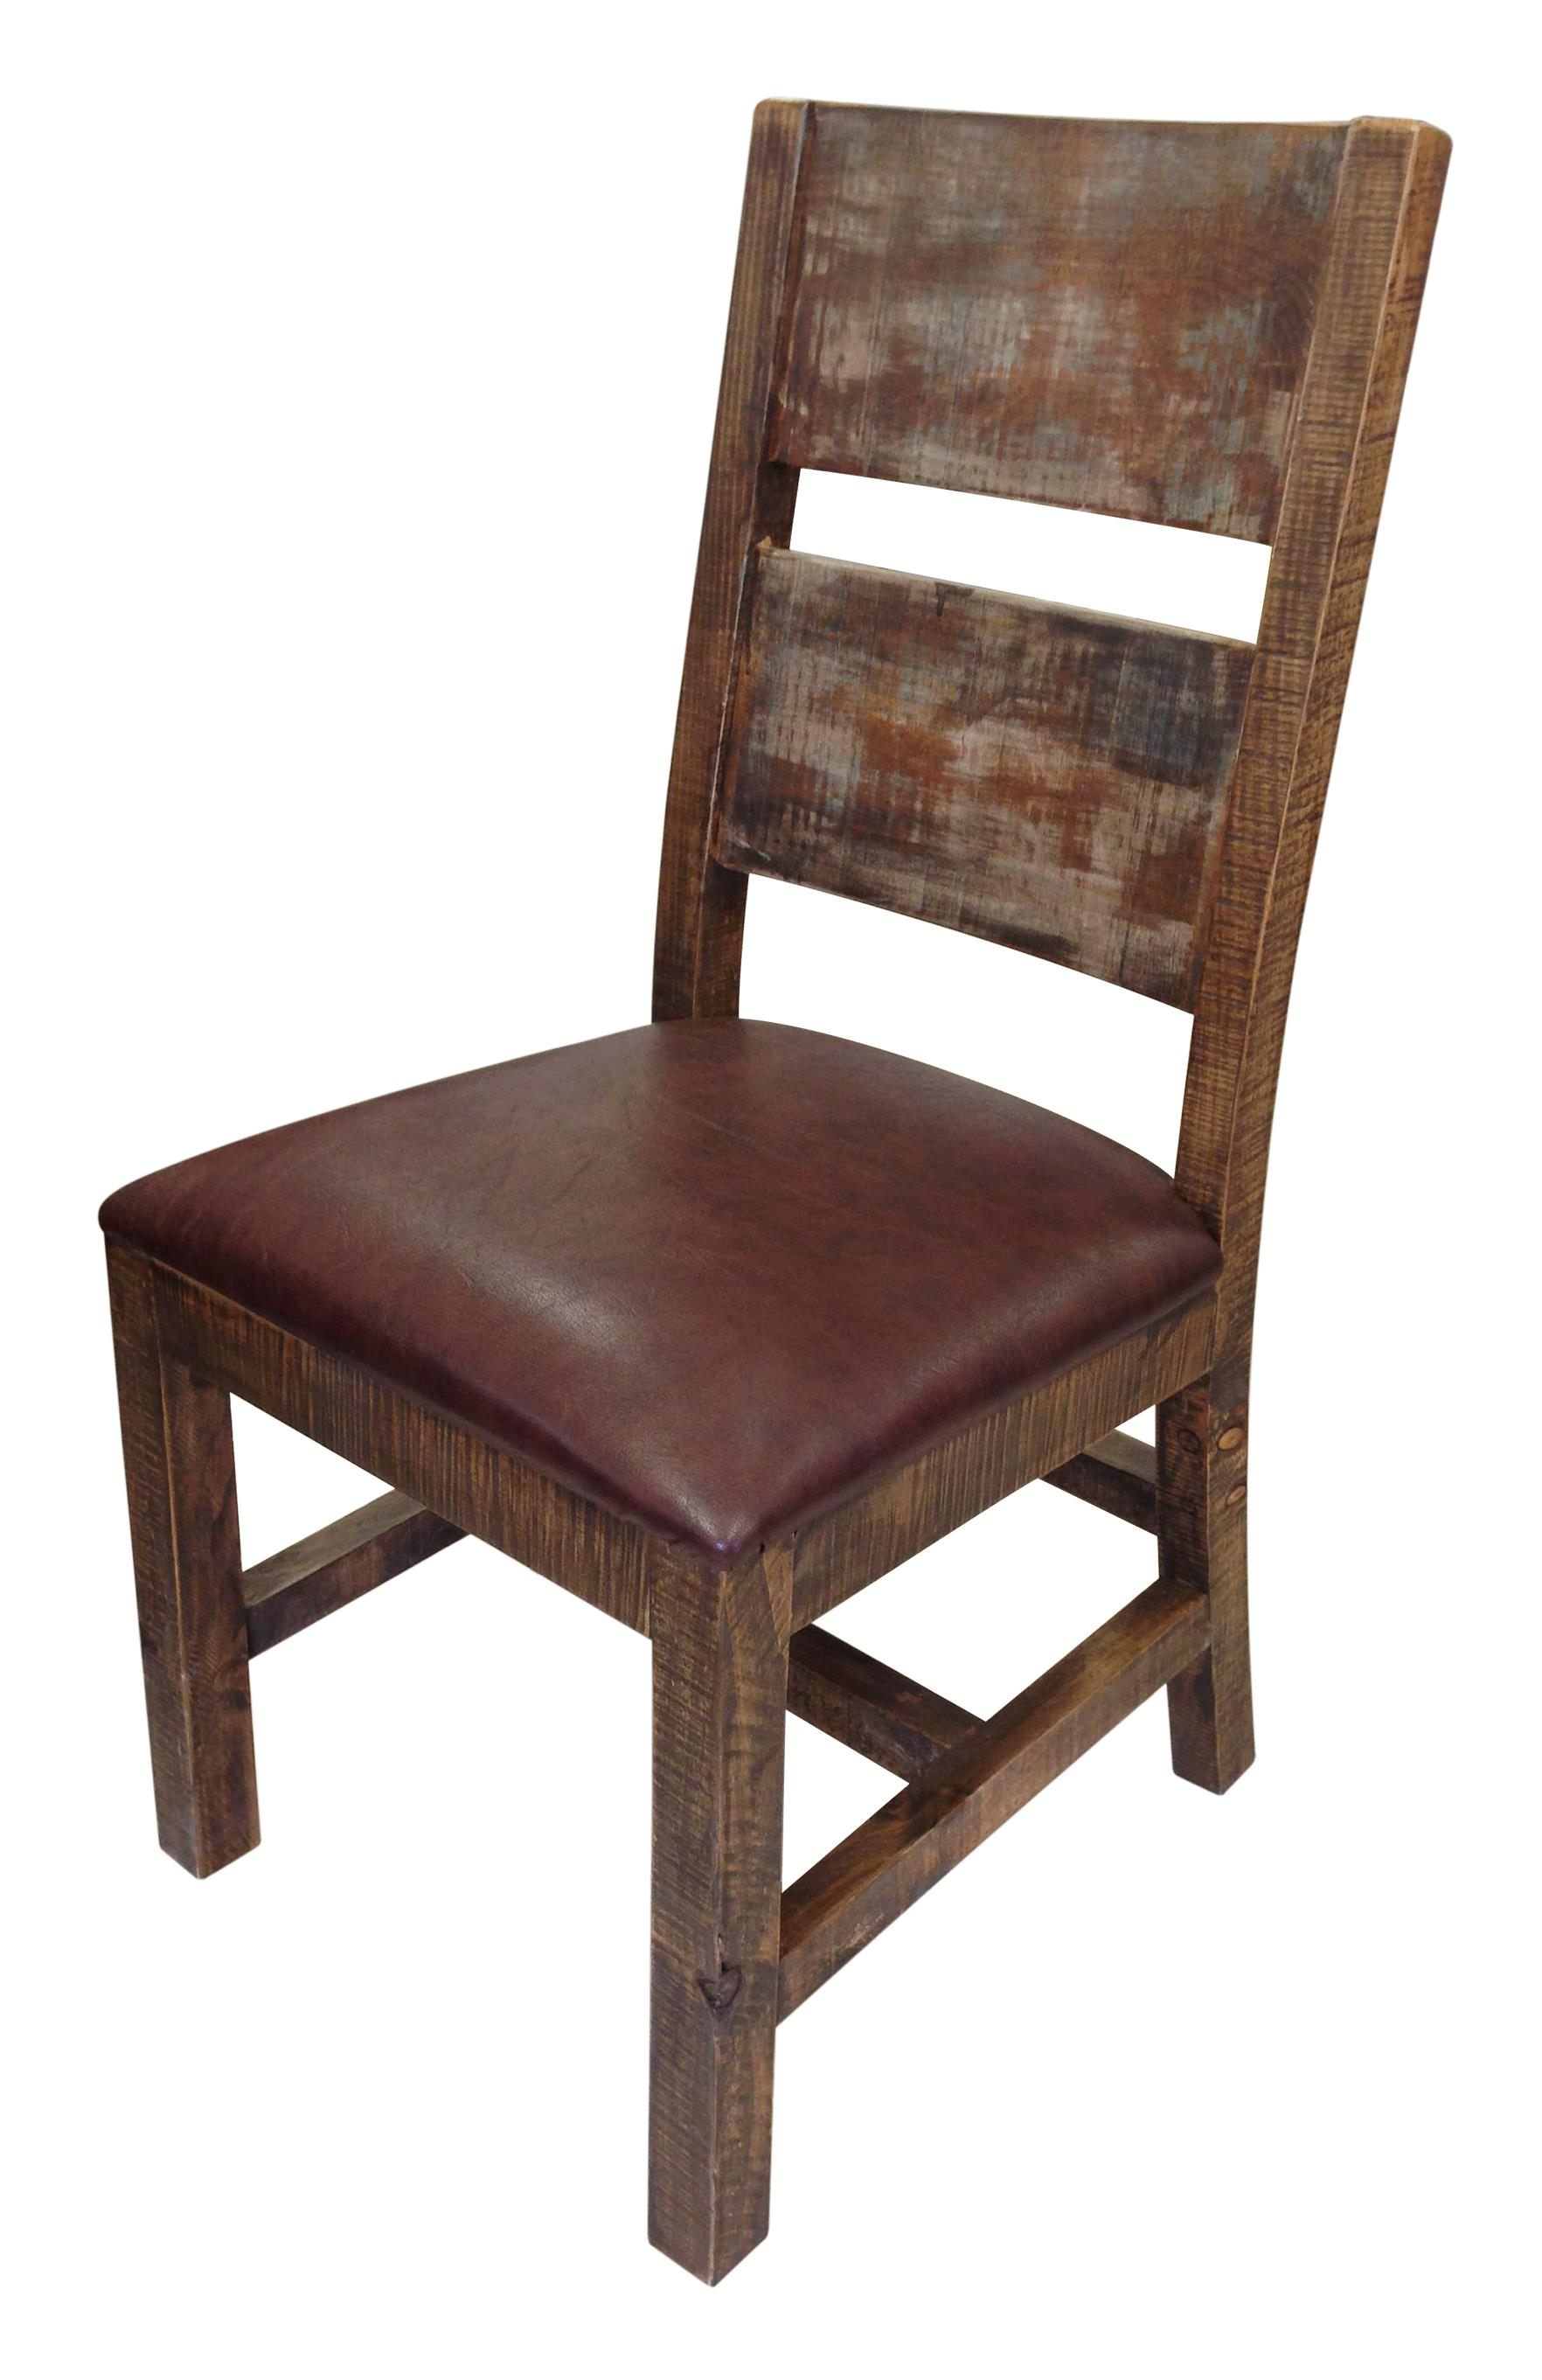 International furniture direct 900 antique ifd967chair mc for Wood dining chairs with leather seats